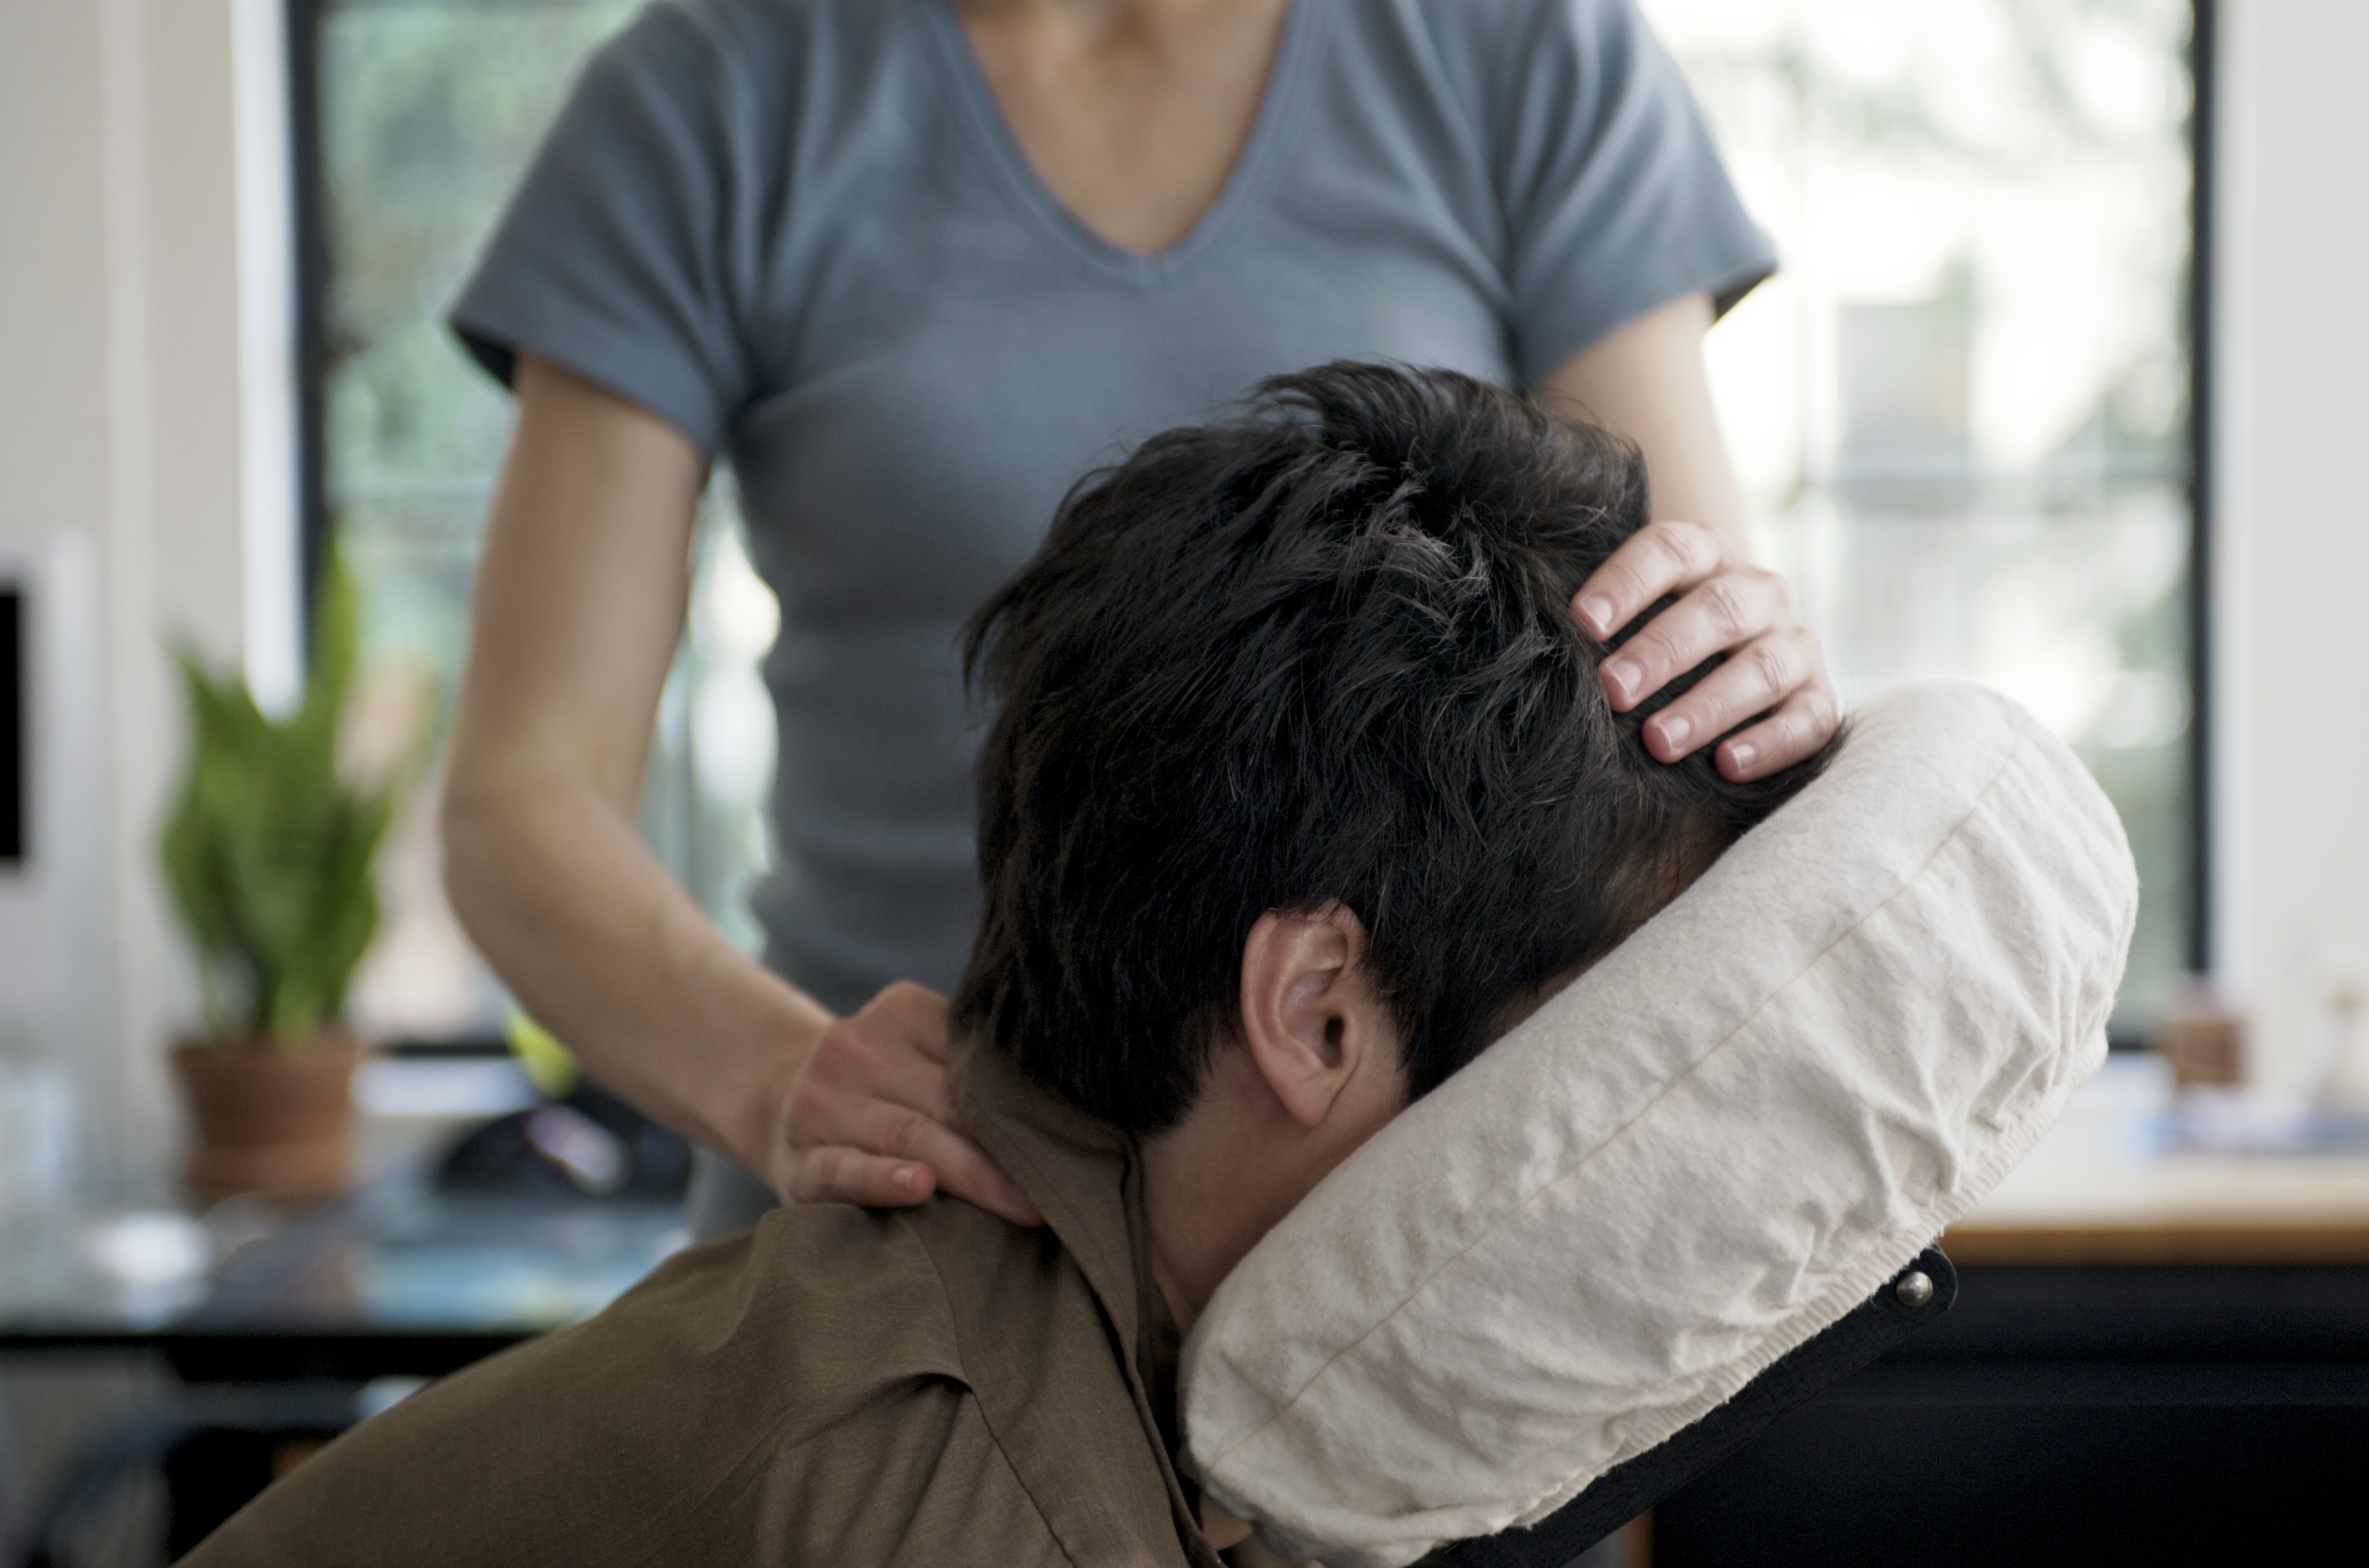 Man Getting Mobile Chair Massage in an Office